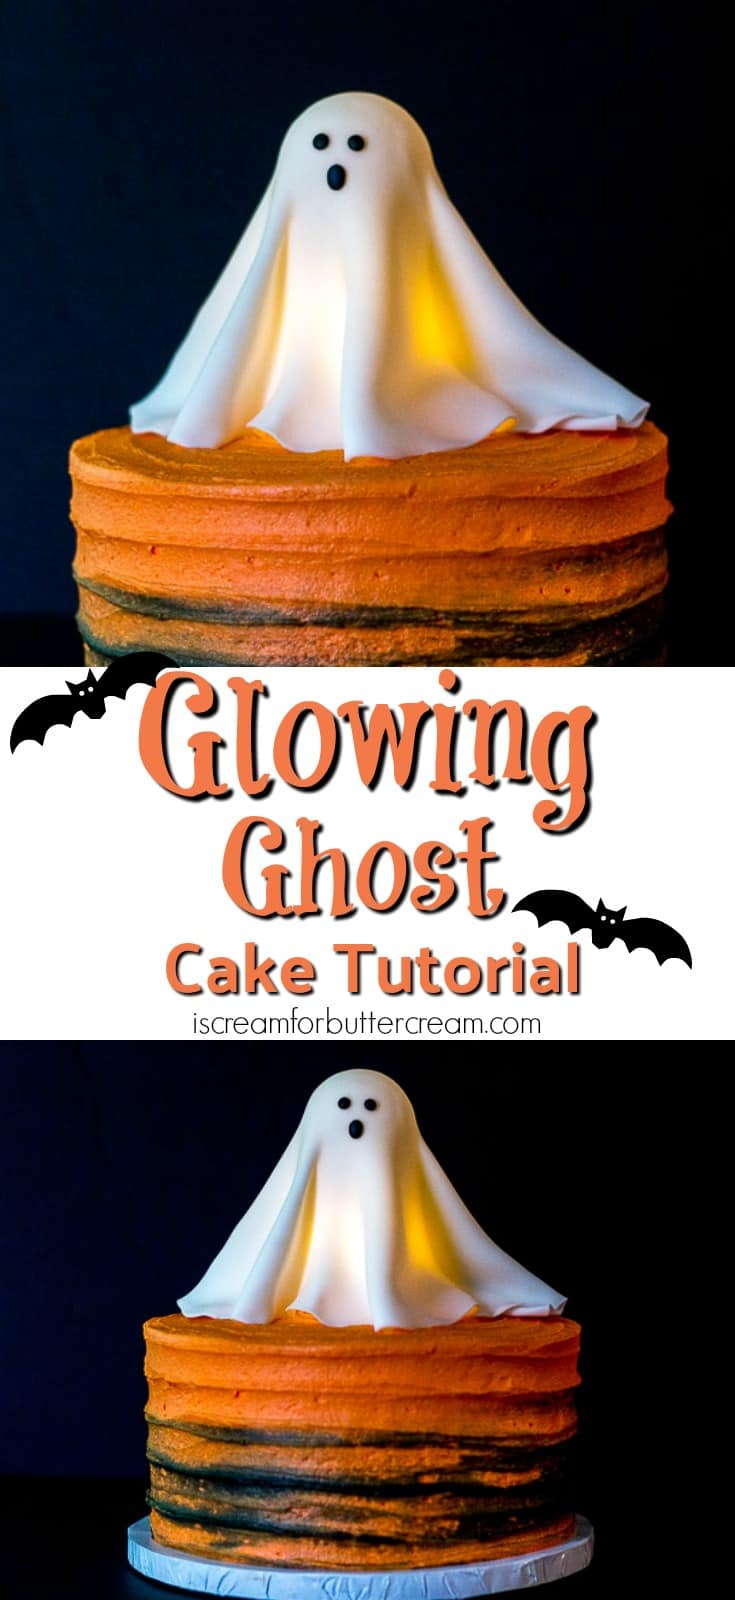 This Halloween, go all out with this Glowing Ghost Cake. It's a real show stopper that looks hard to make, but is surprisingly easy. It's really eye-catching and the kids will love it. And yes, it's really lit from within. #HalloweenCake